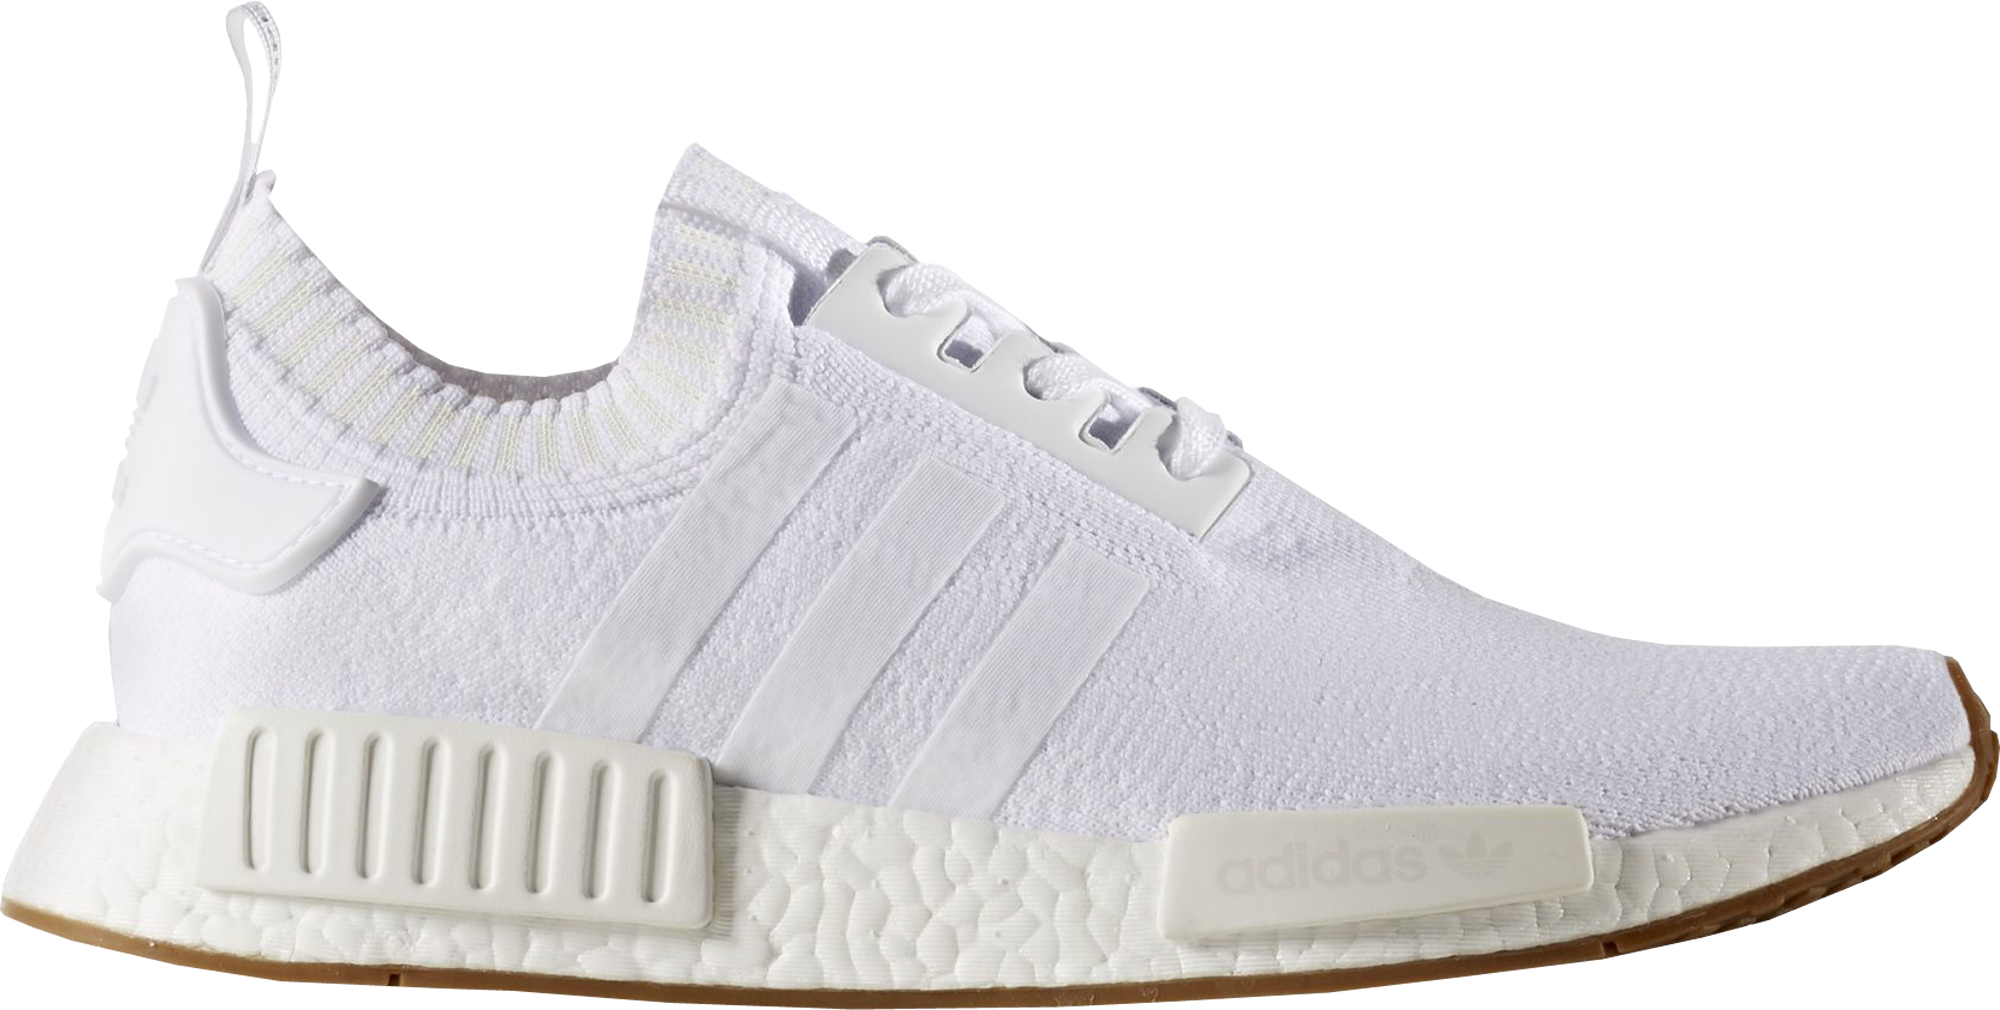 adidas NMD R1 White Gum - Sneakers